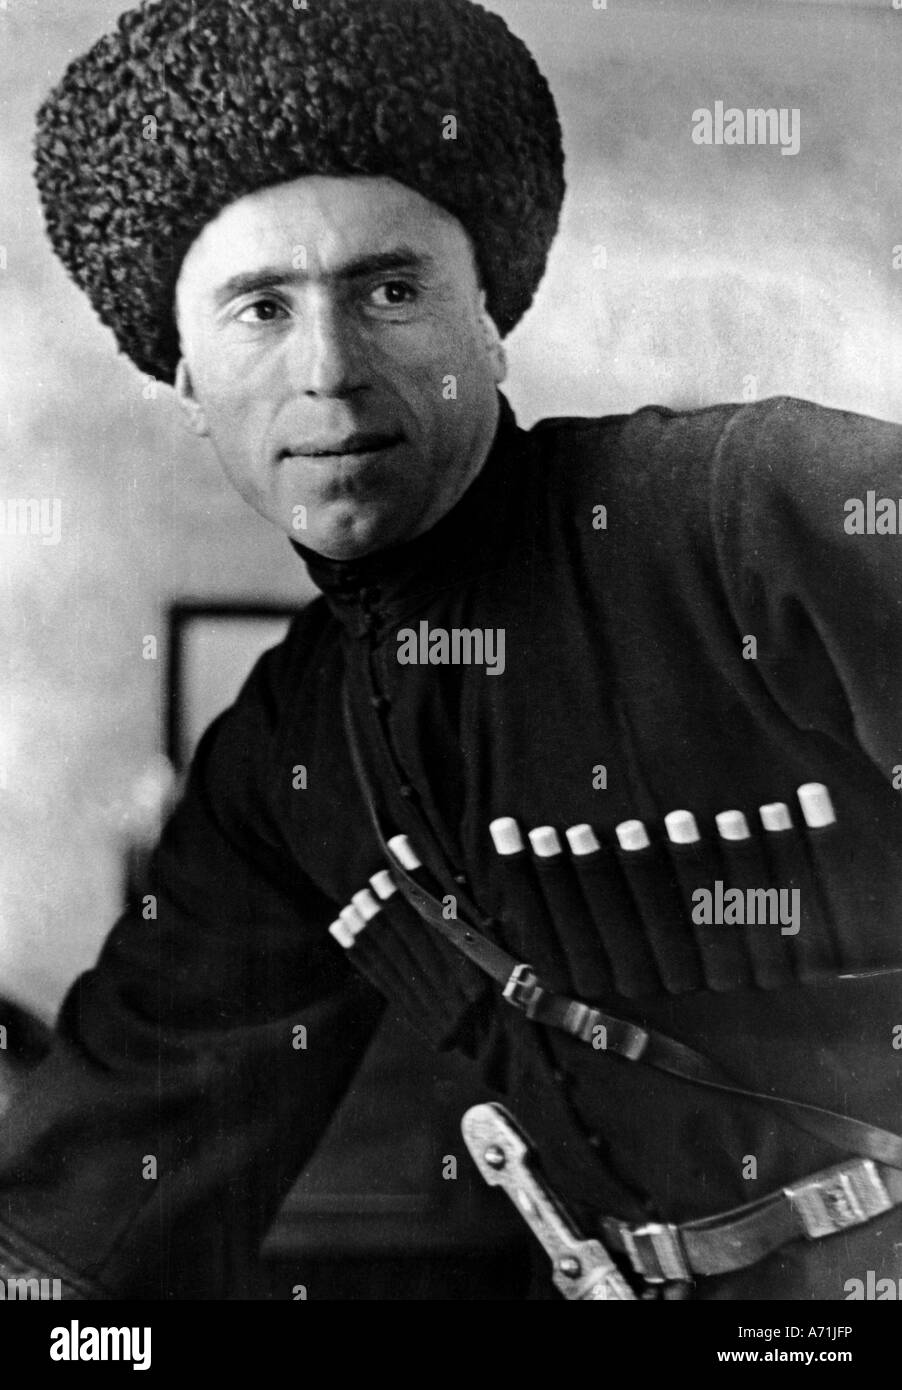 events, Second World War / WWII, foreigners in German service, cossacks, cossack officer, Russia, 1943, Additional - Stock Image